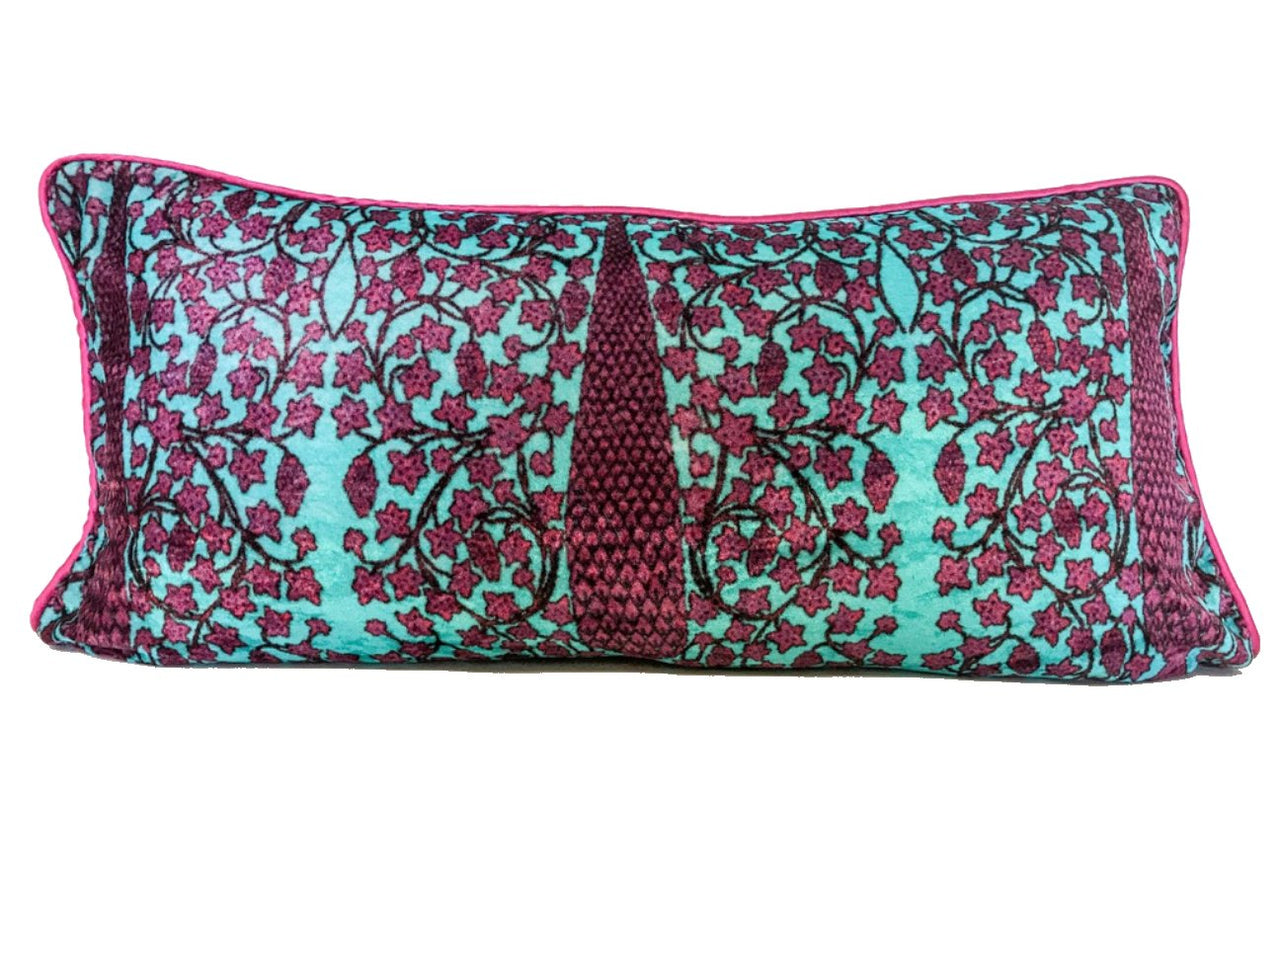 Velvet Cushion 14x28 Burgundy Cypress on turquoise background - Maison Fusion